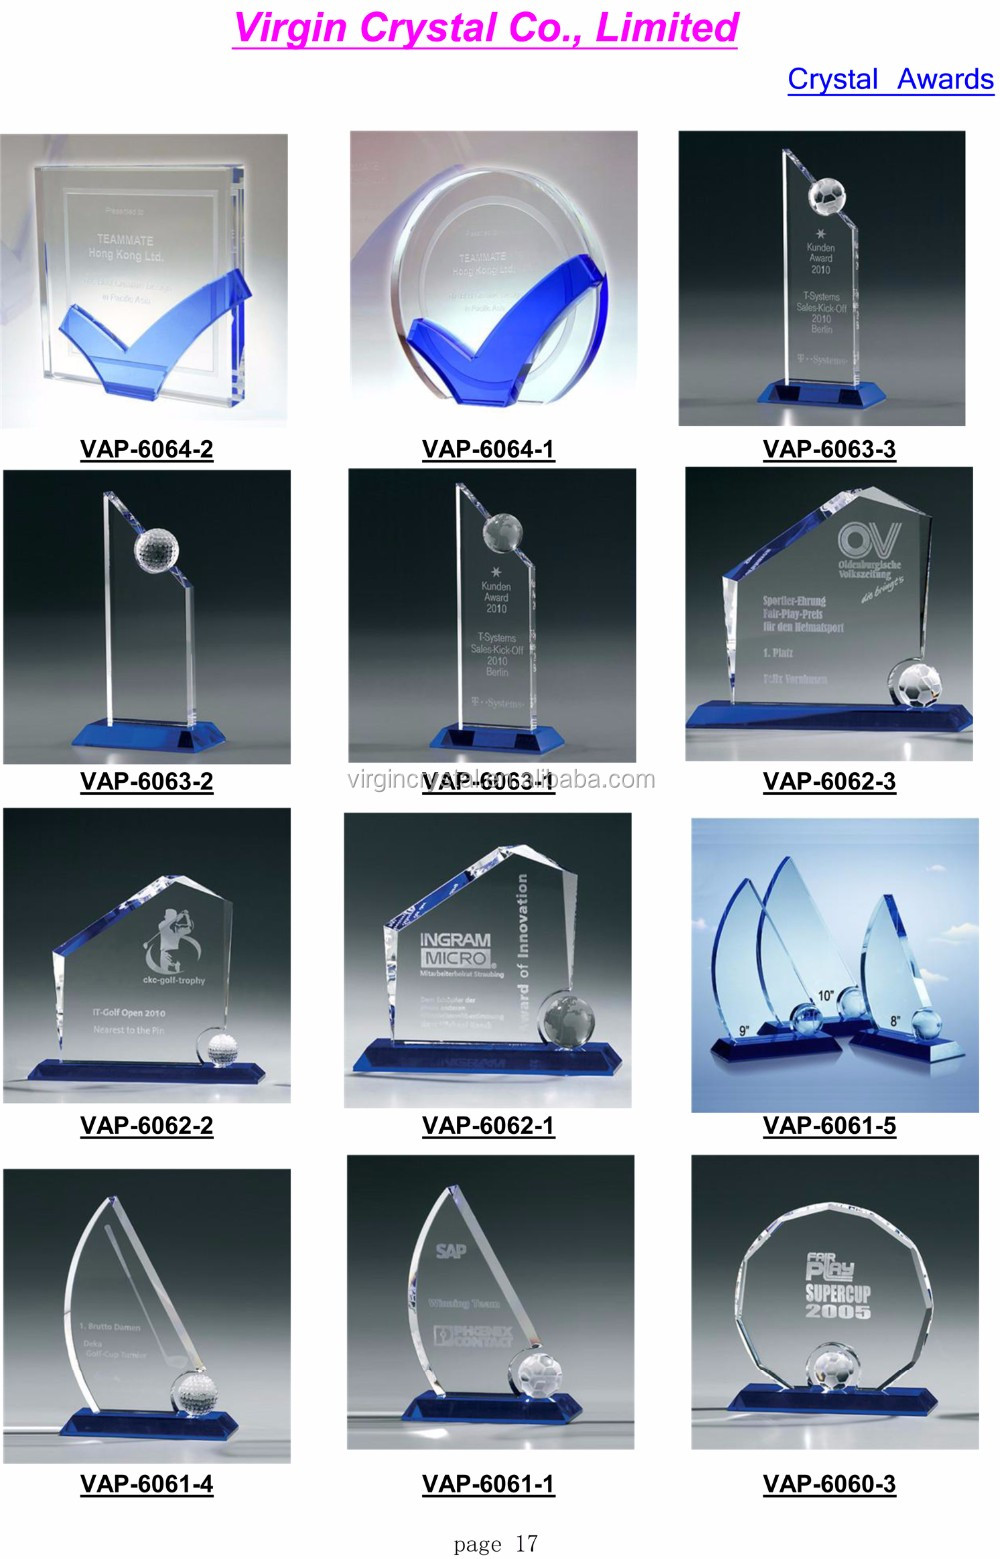 2016 Crystal Awards Catalog-17.jpg